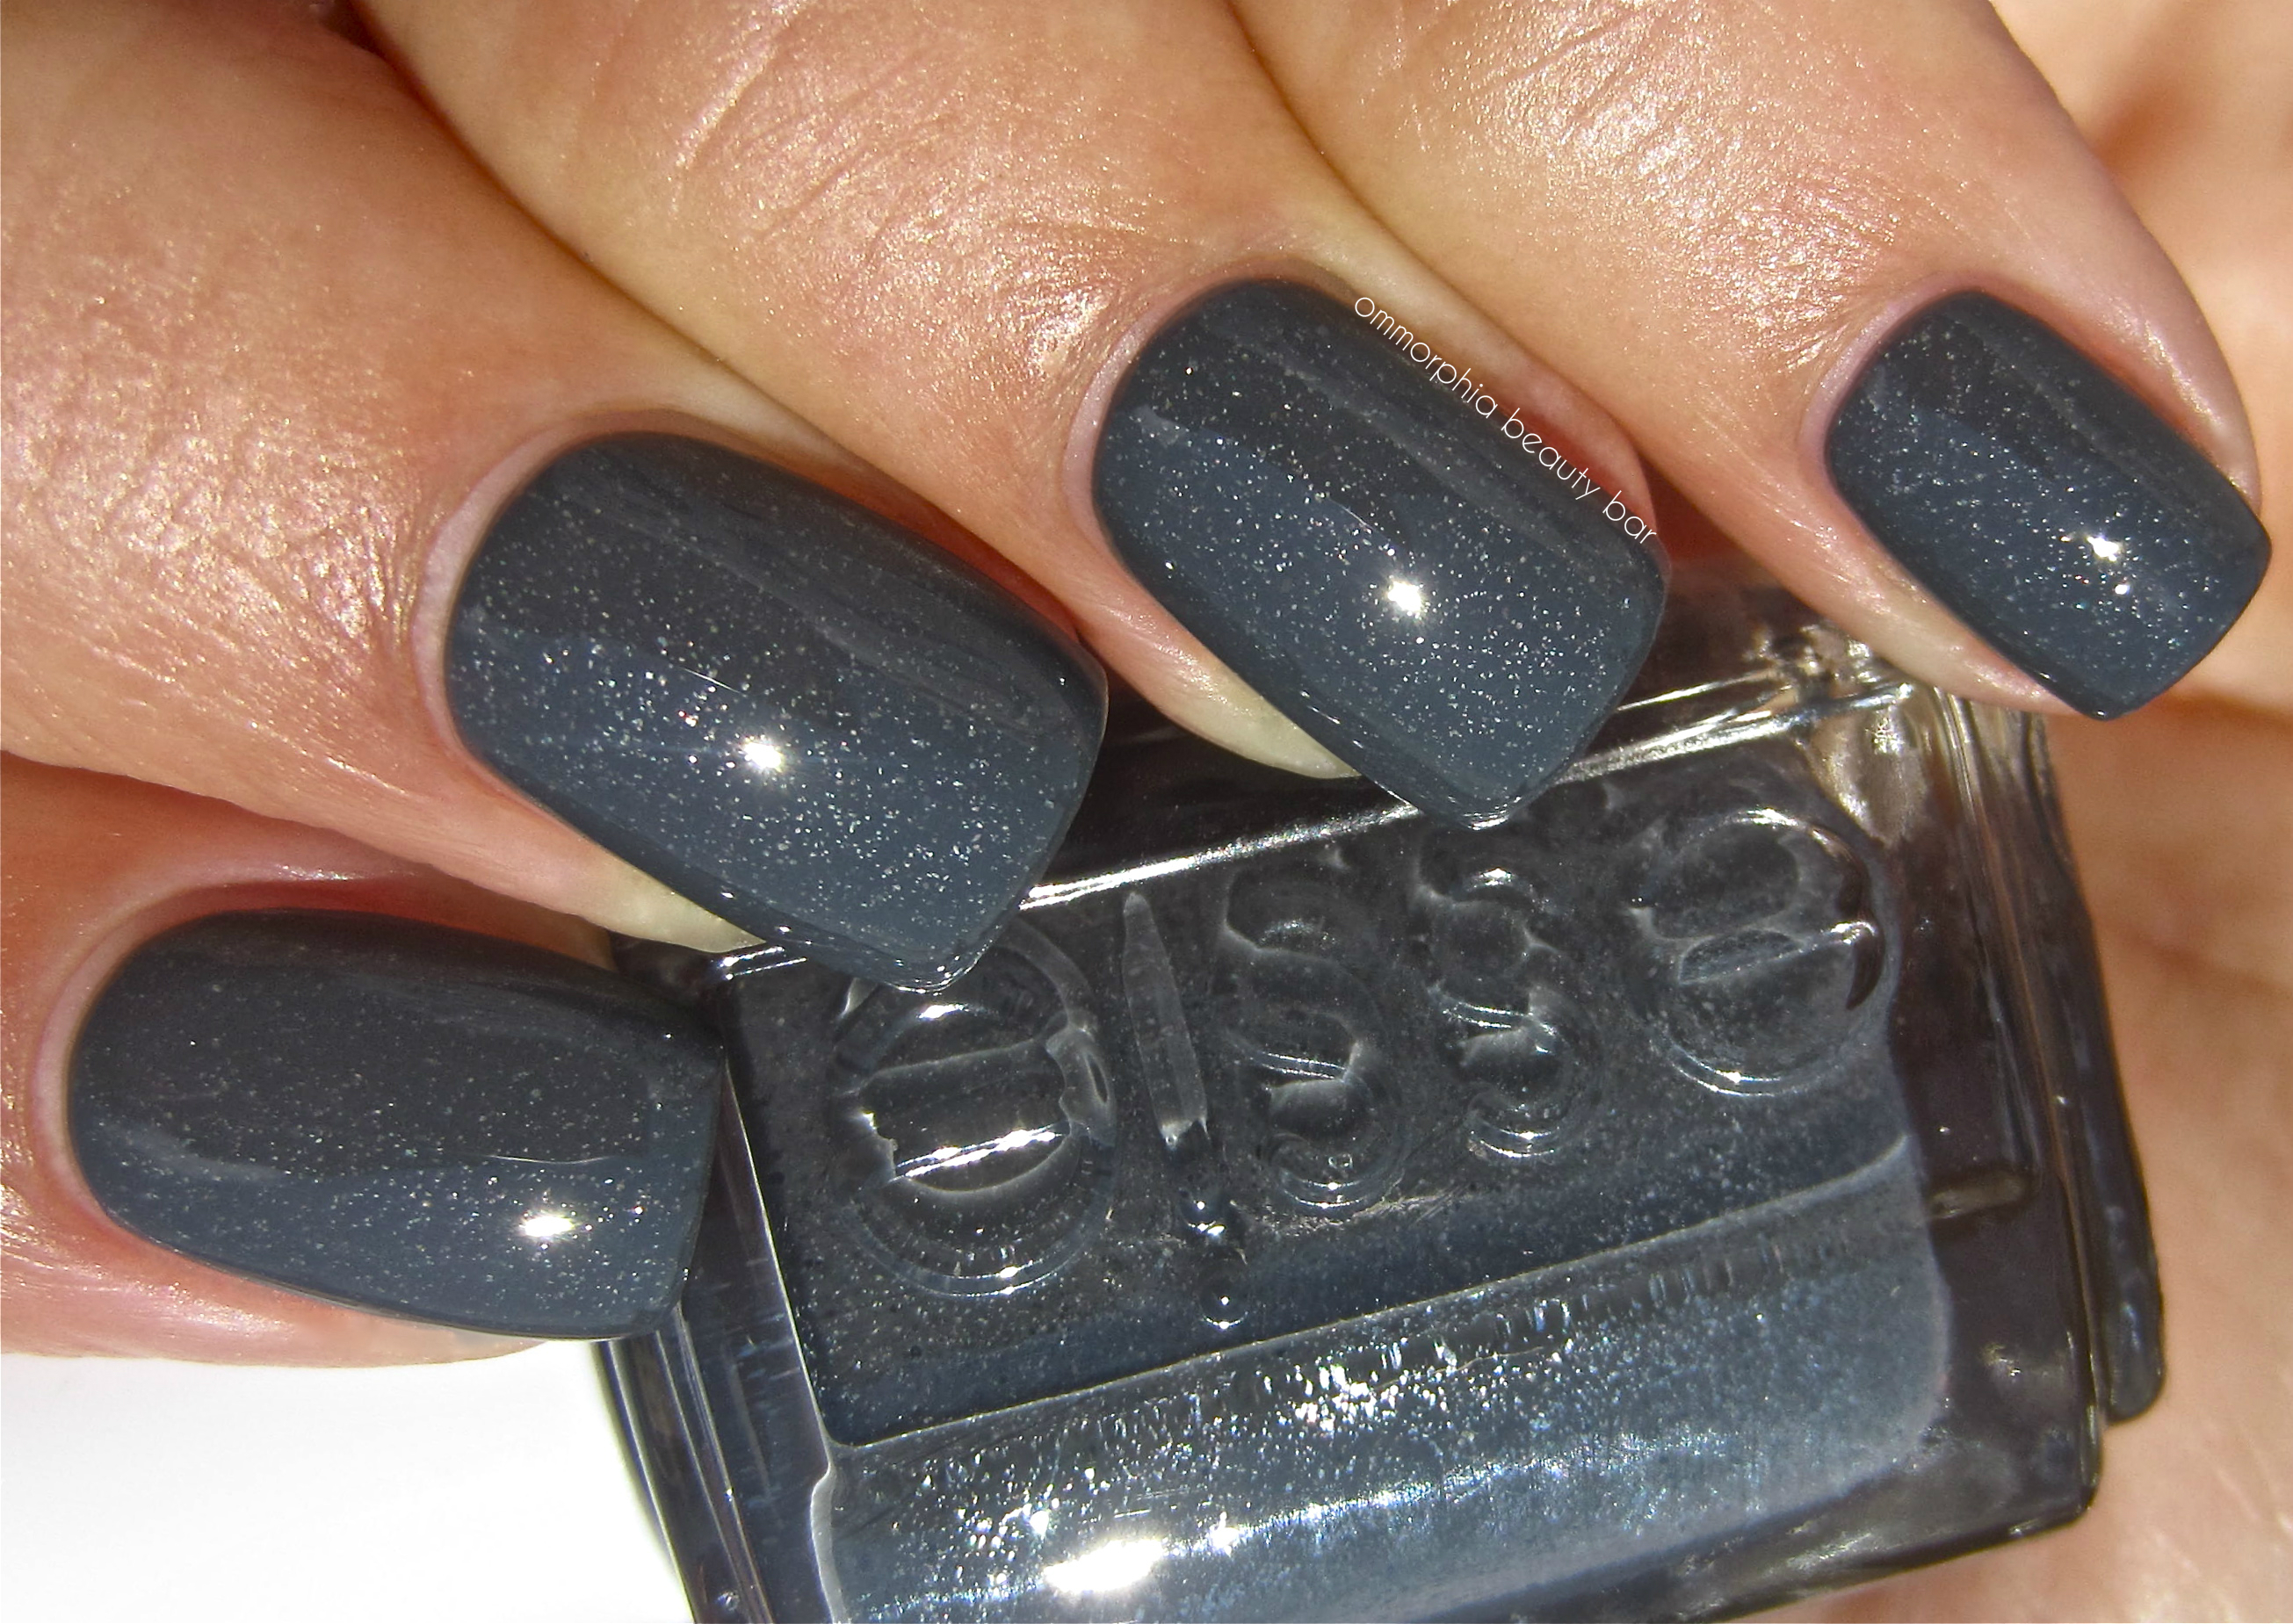 Essie Cashmere Bathrobe swatch | ommorphia beauty bar